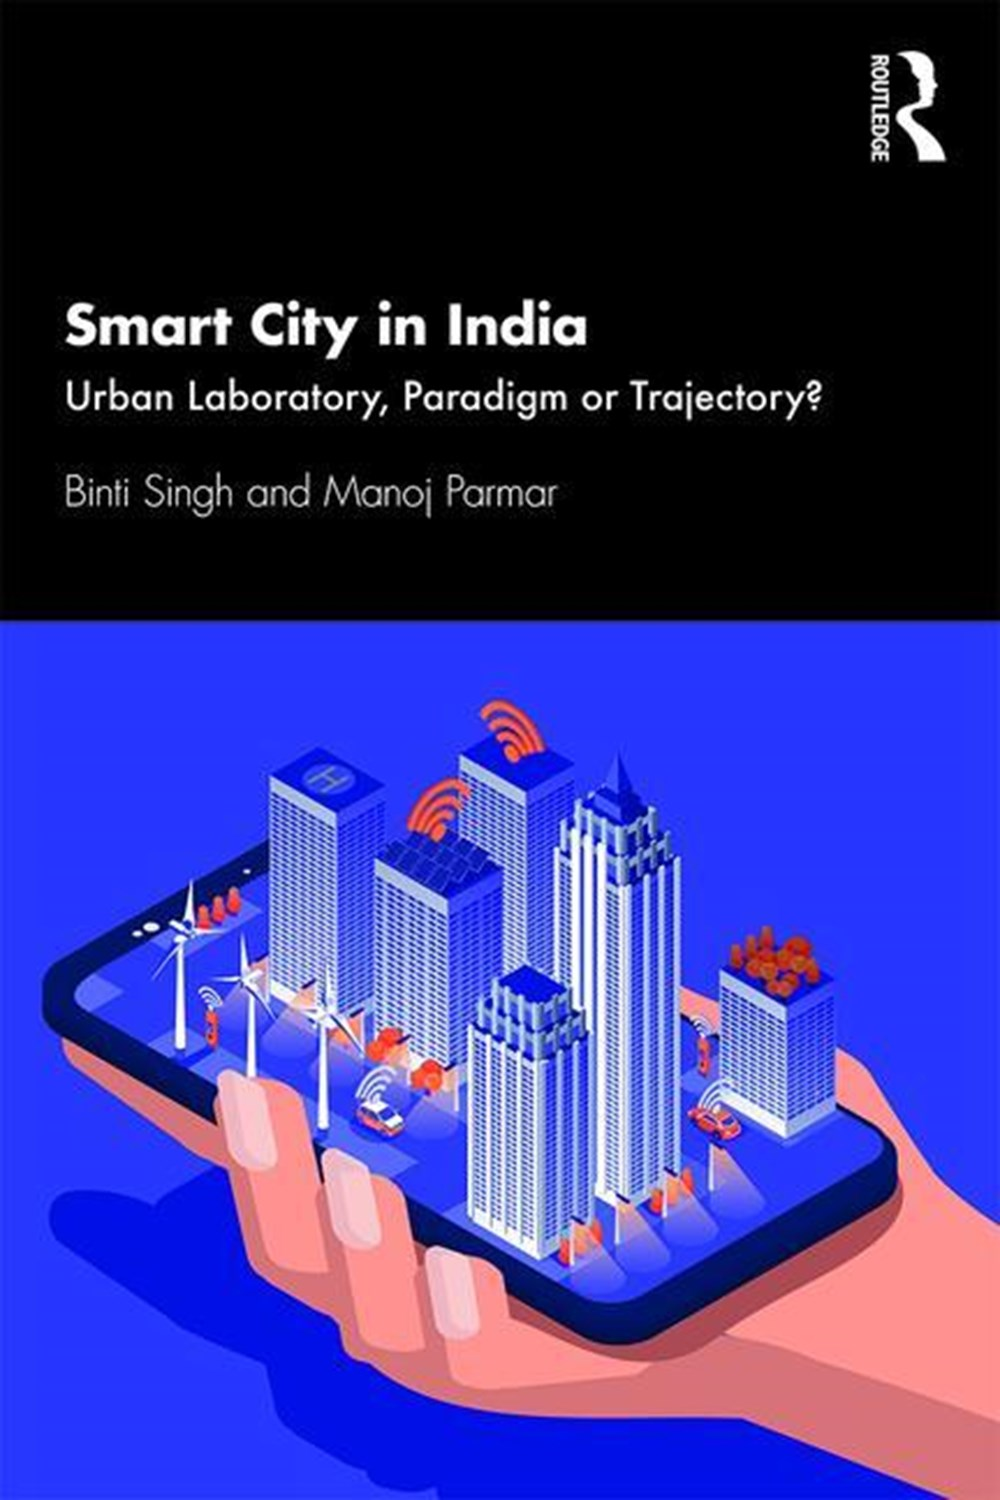 Smart City in India Urban Laboratory, Paradigm or Trajectory?